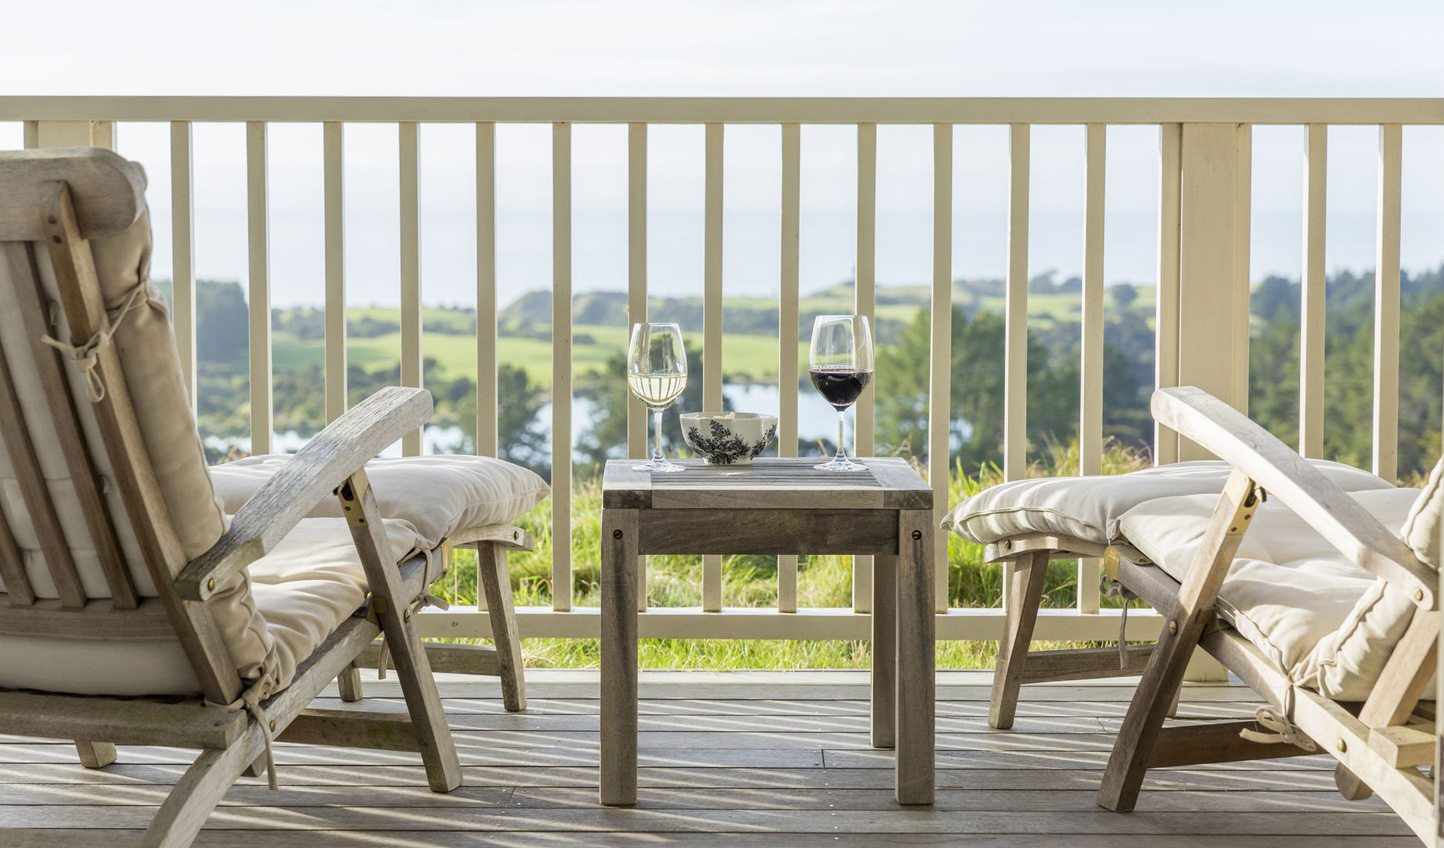 Wind down with a glass of wine at The Farm at Cape Kidnappers